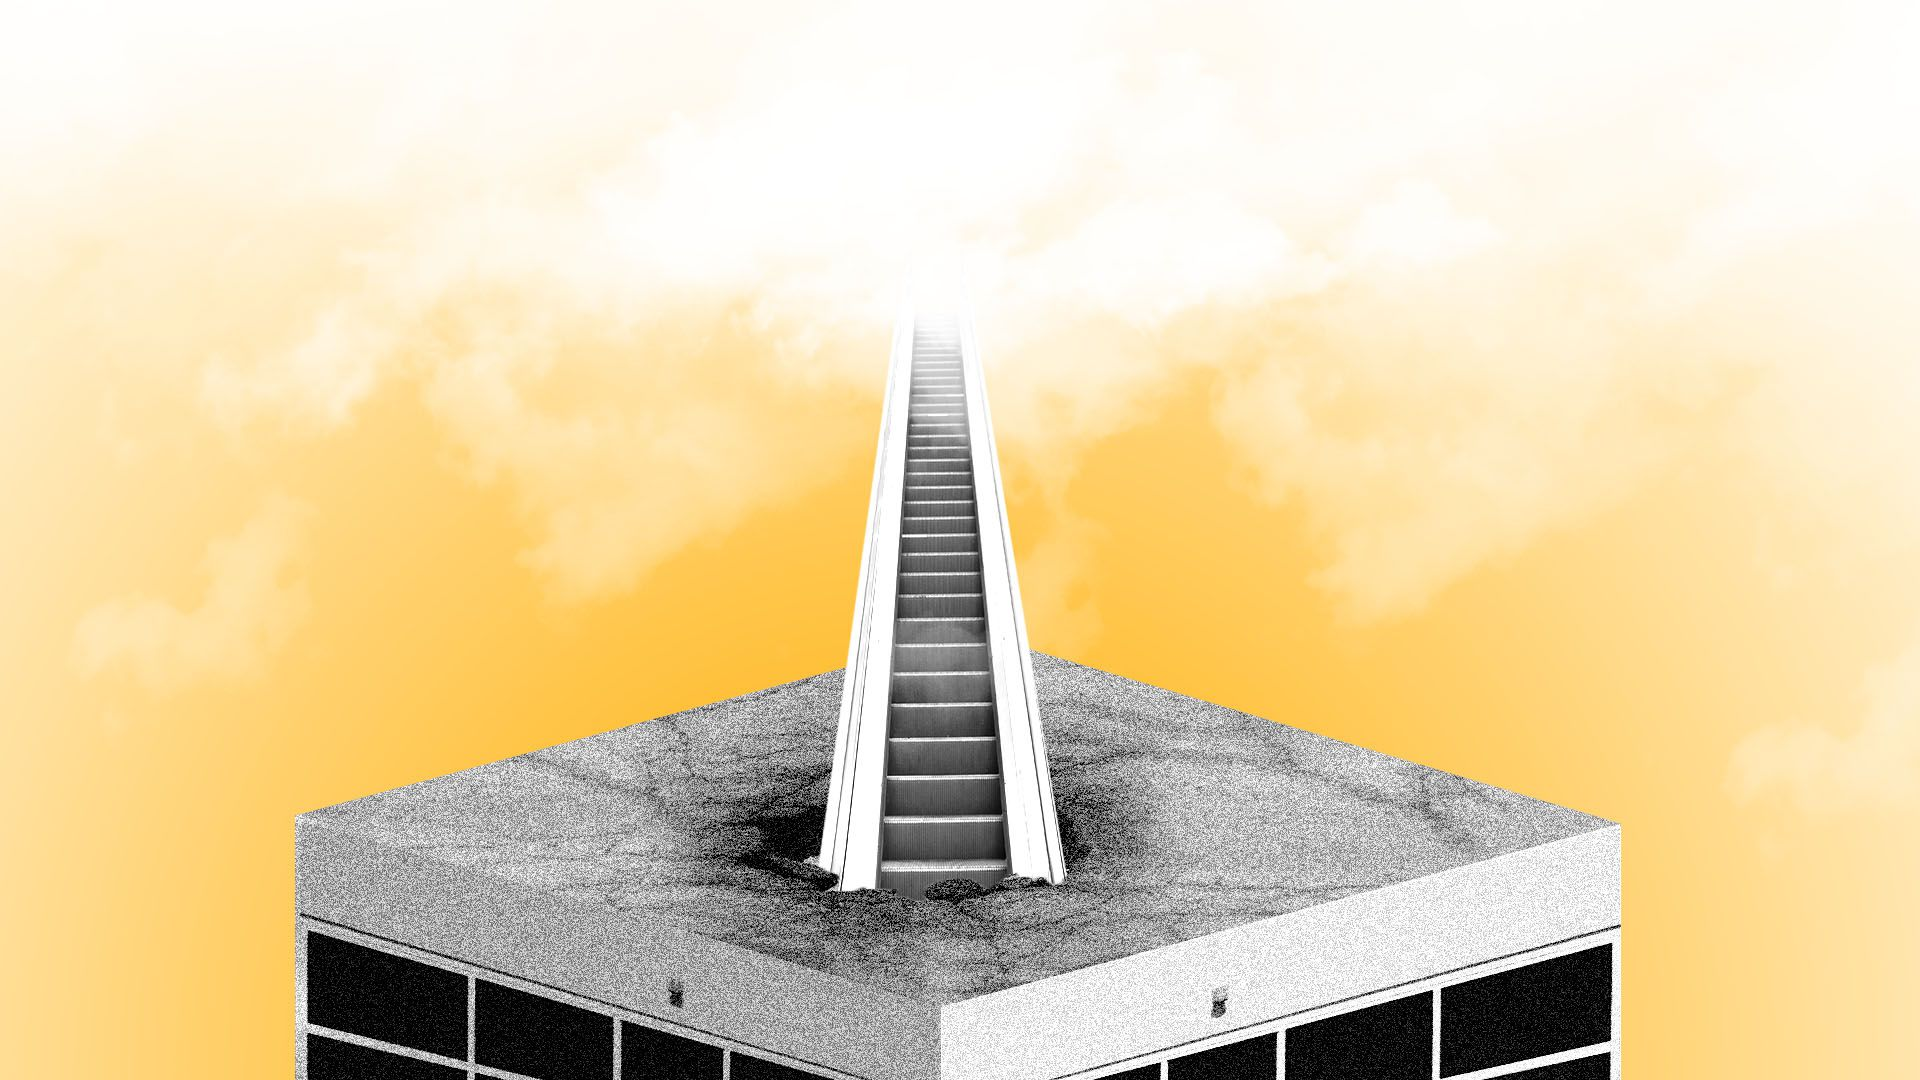 Illustration of an escalator crashing through the rough of a mall and extending into the clouds